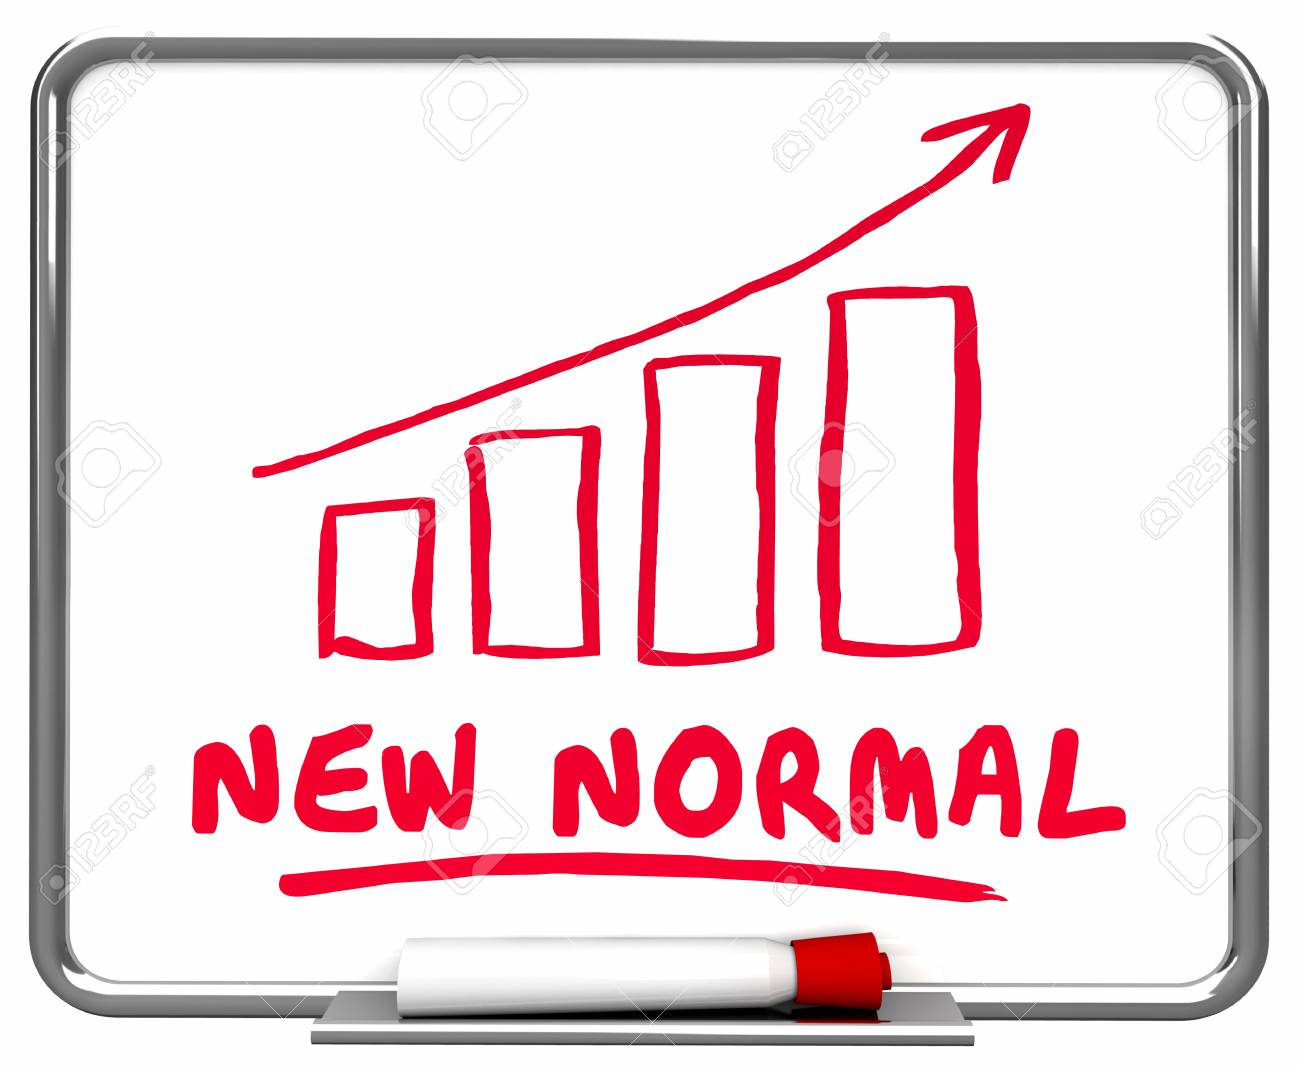 New Normal Reality Conditions Arrow Rising Trend 3d Illustration